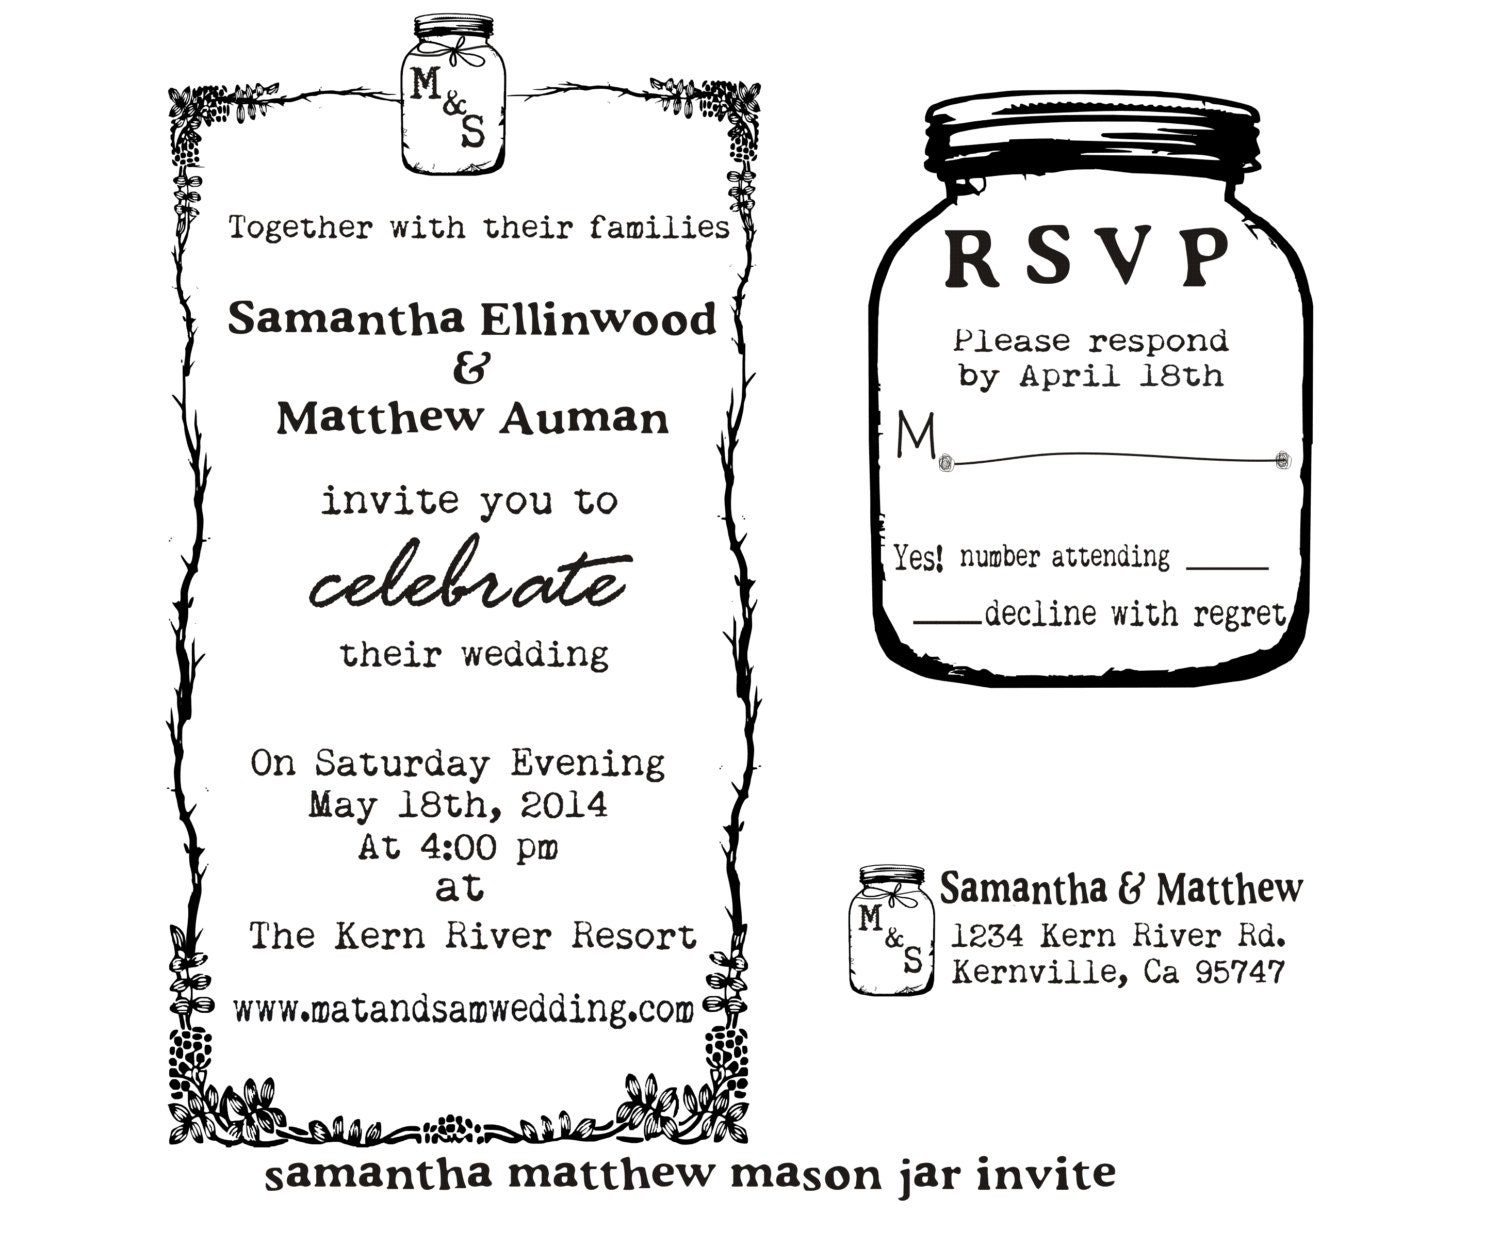 Wedding Invite Stamp: Mason Jar Wedding Invitation Rubber Stamp SET With Invitation